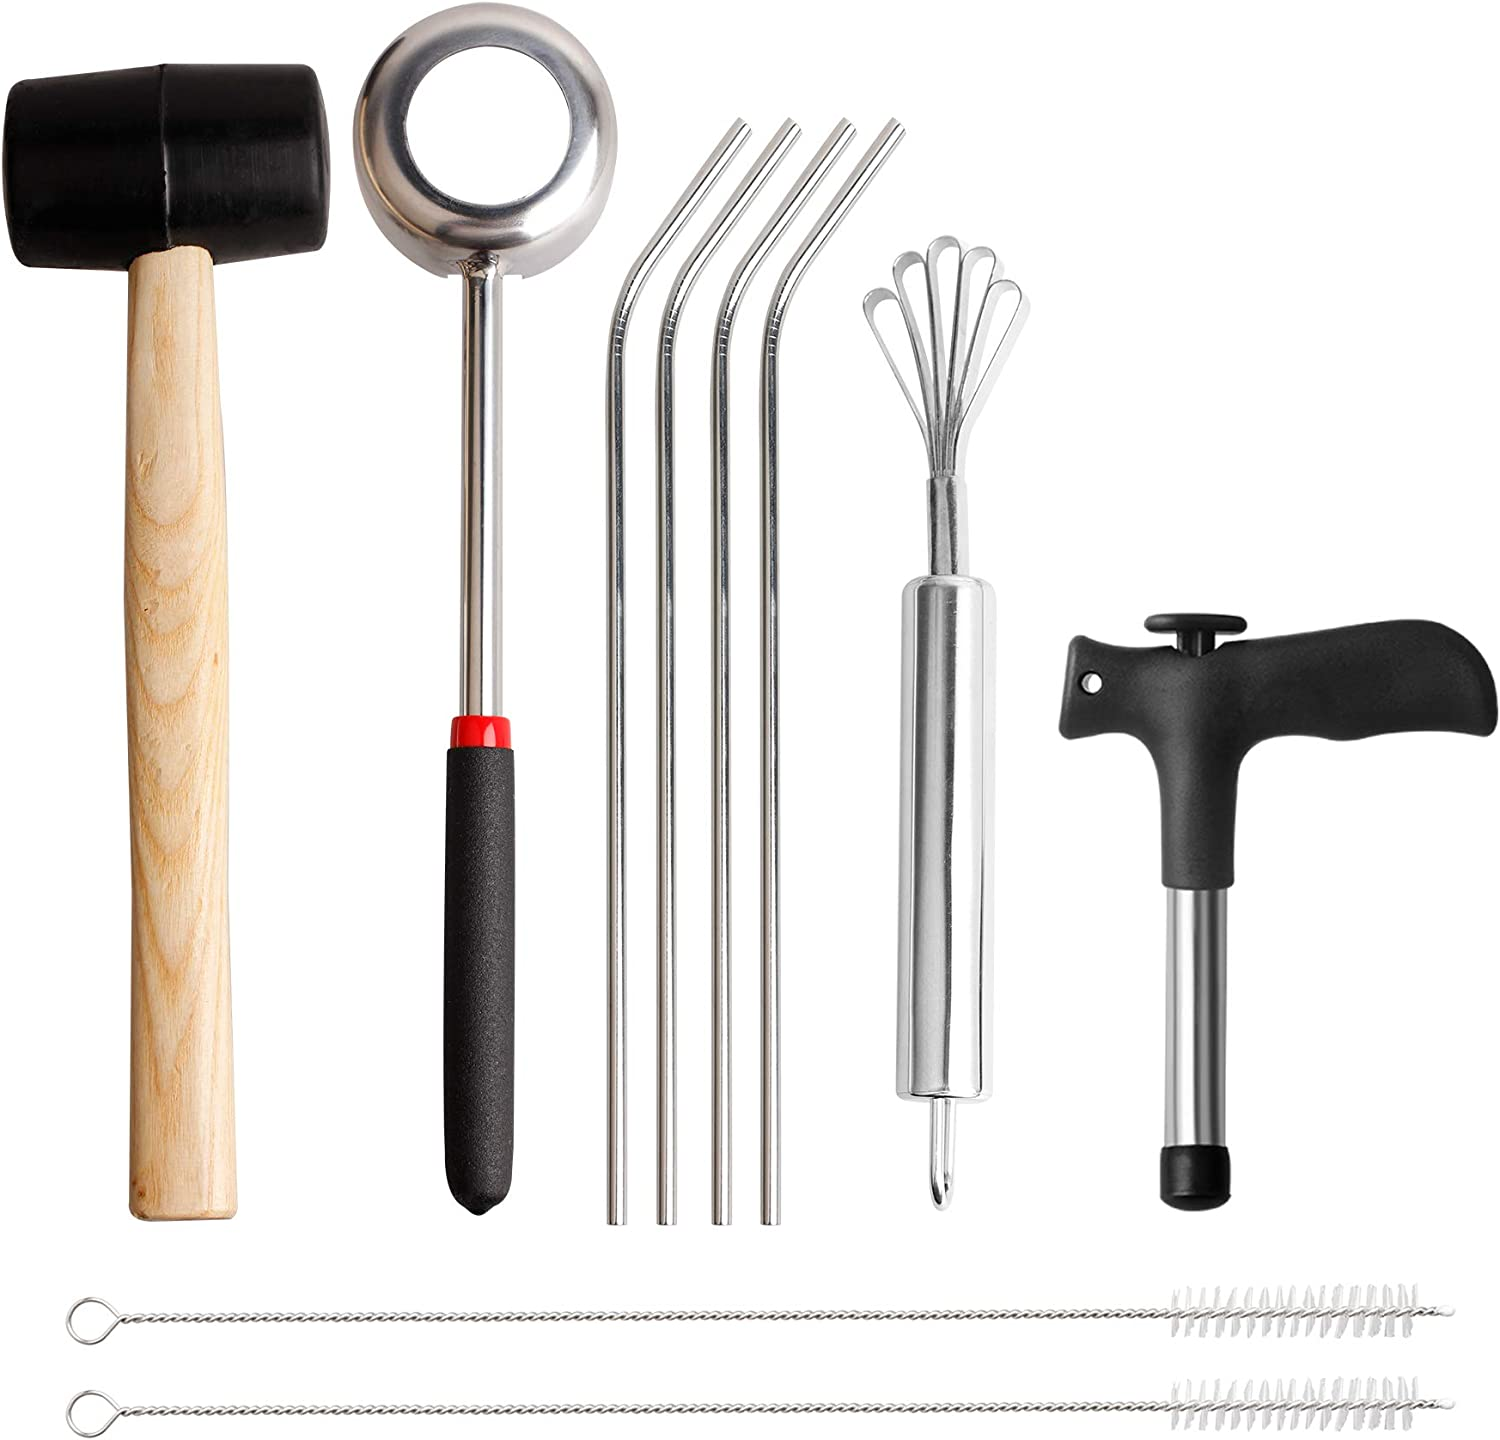 YiePhiot Coconut Opener Tools with Hammer, Food Grade Stainless Steel Scraper, Drinking Straws, Punch Tap Knife Coconut Opener Set, Rubber Mallet with Handle